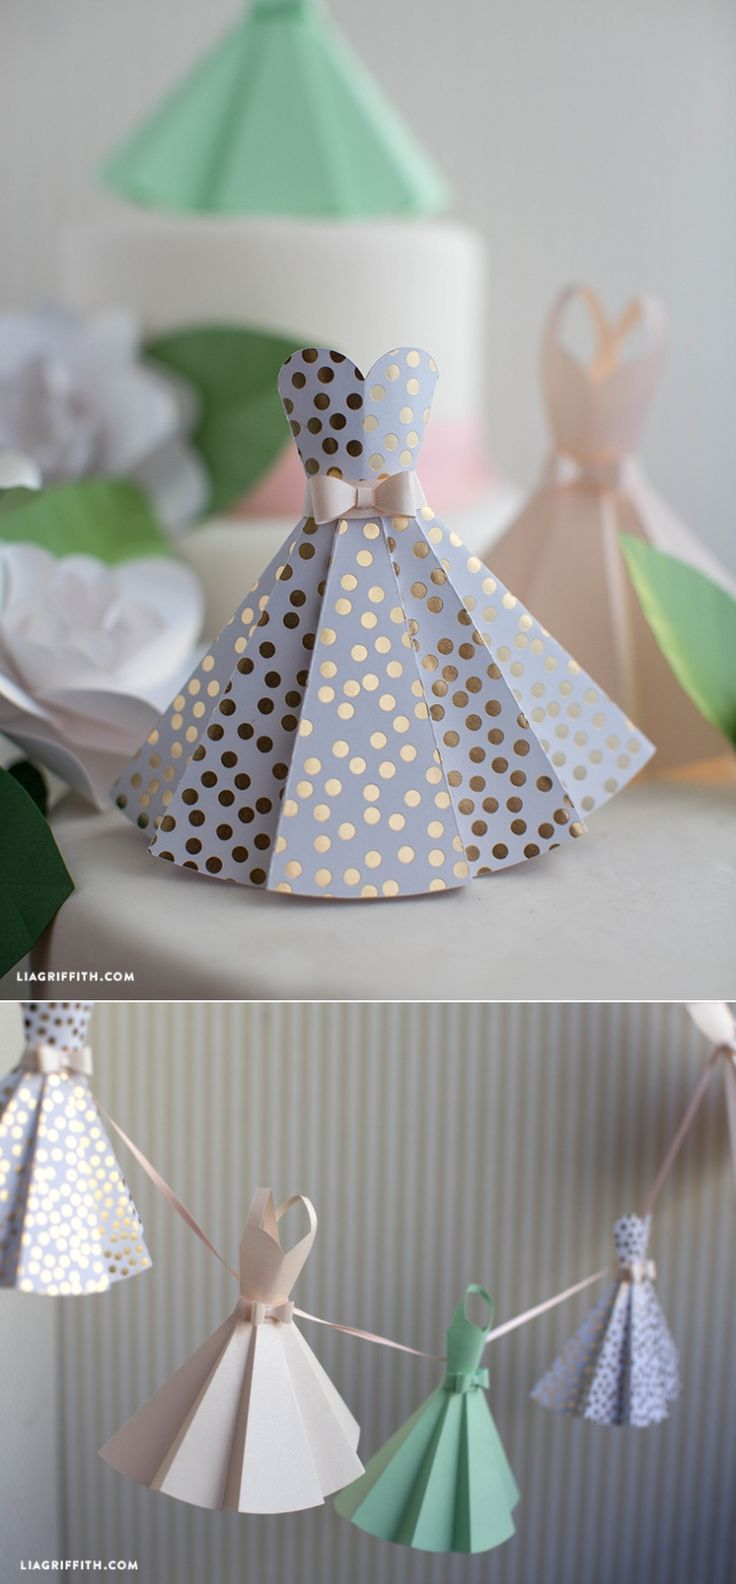 #diywedding #weddingdecor #paperdress www.LiaGriffith.com: